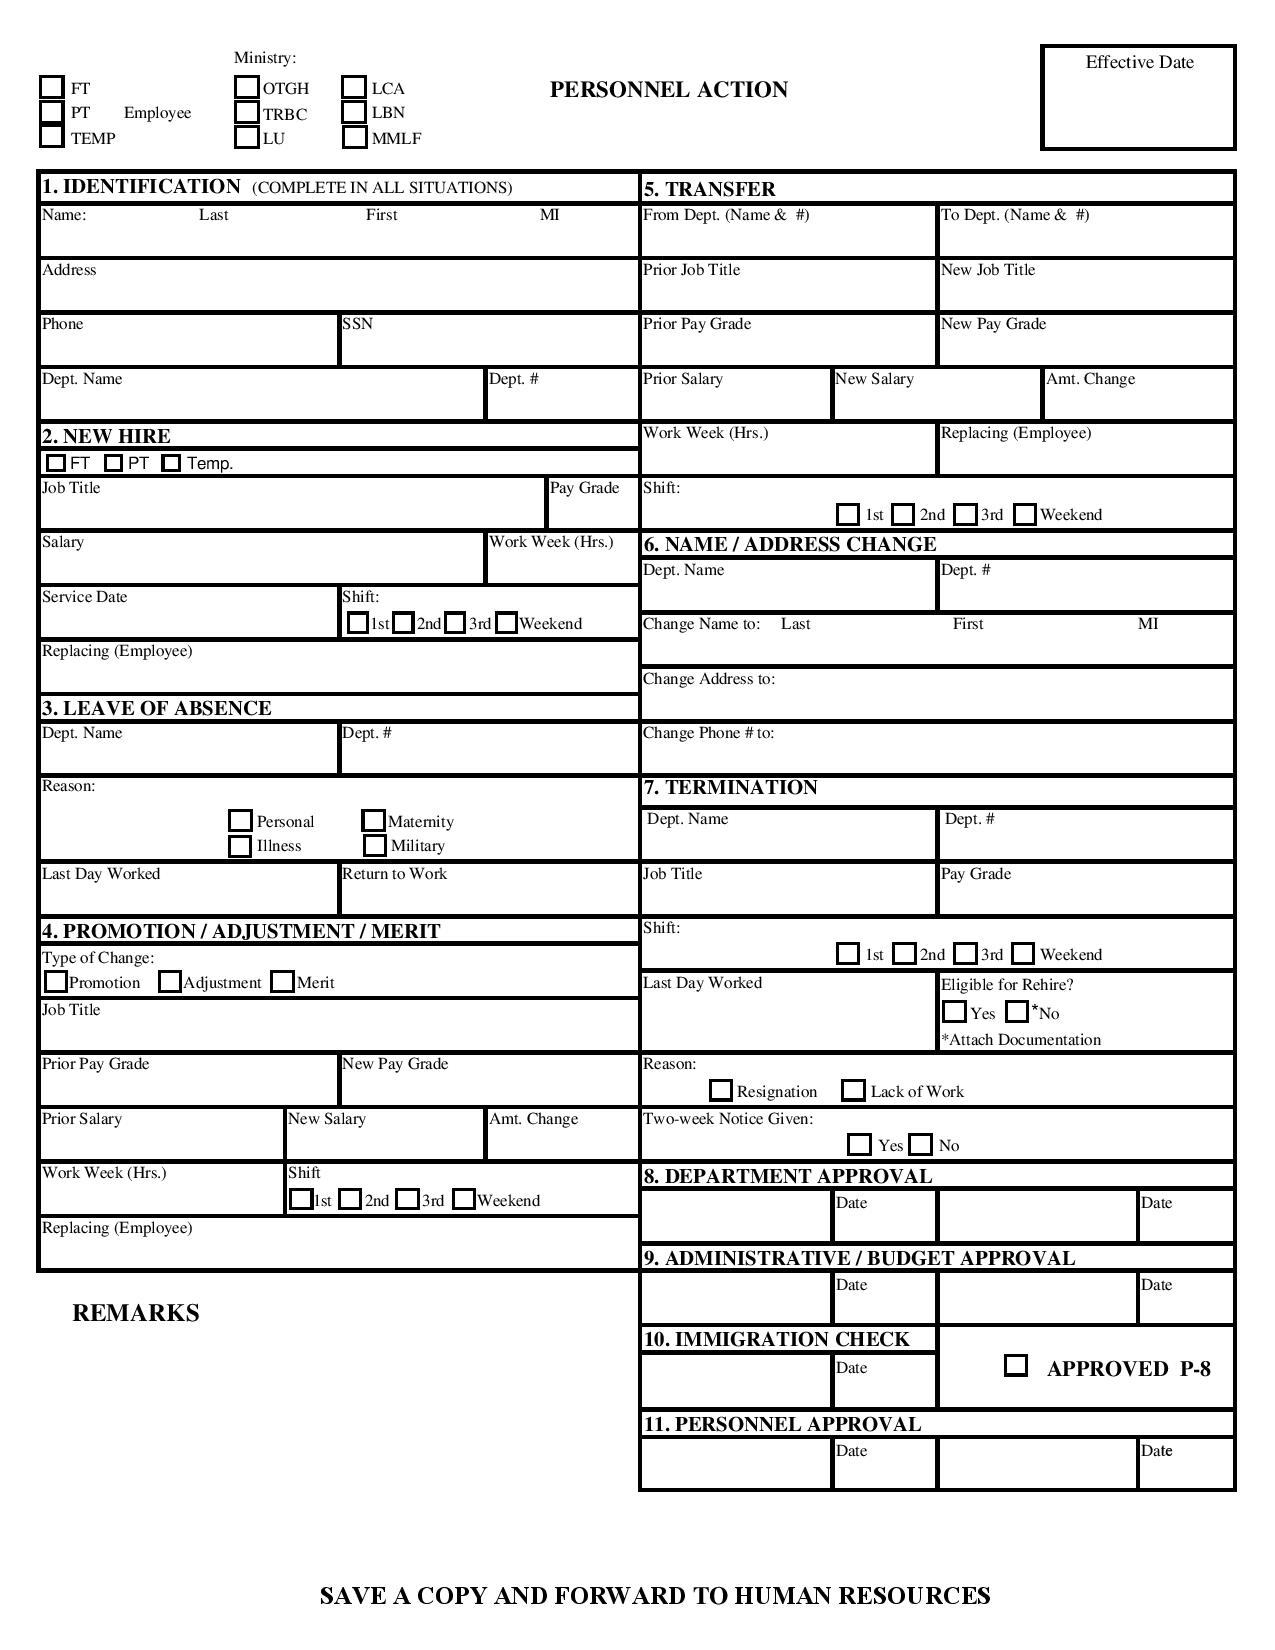 human resource personnel action form page 001